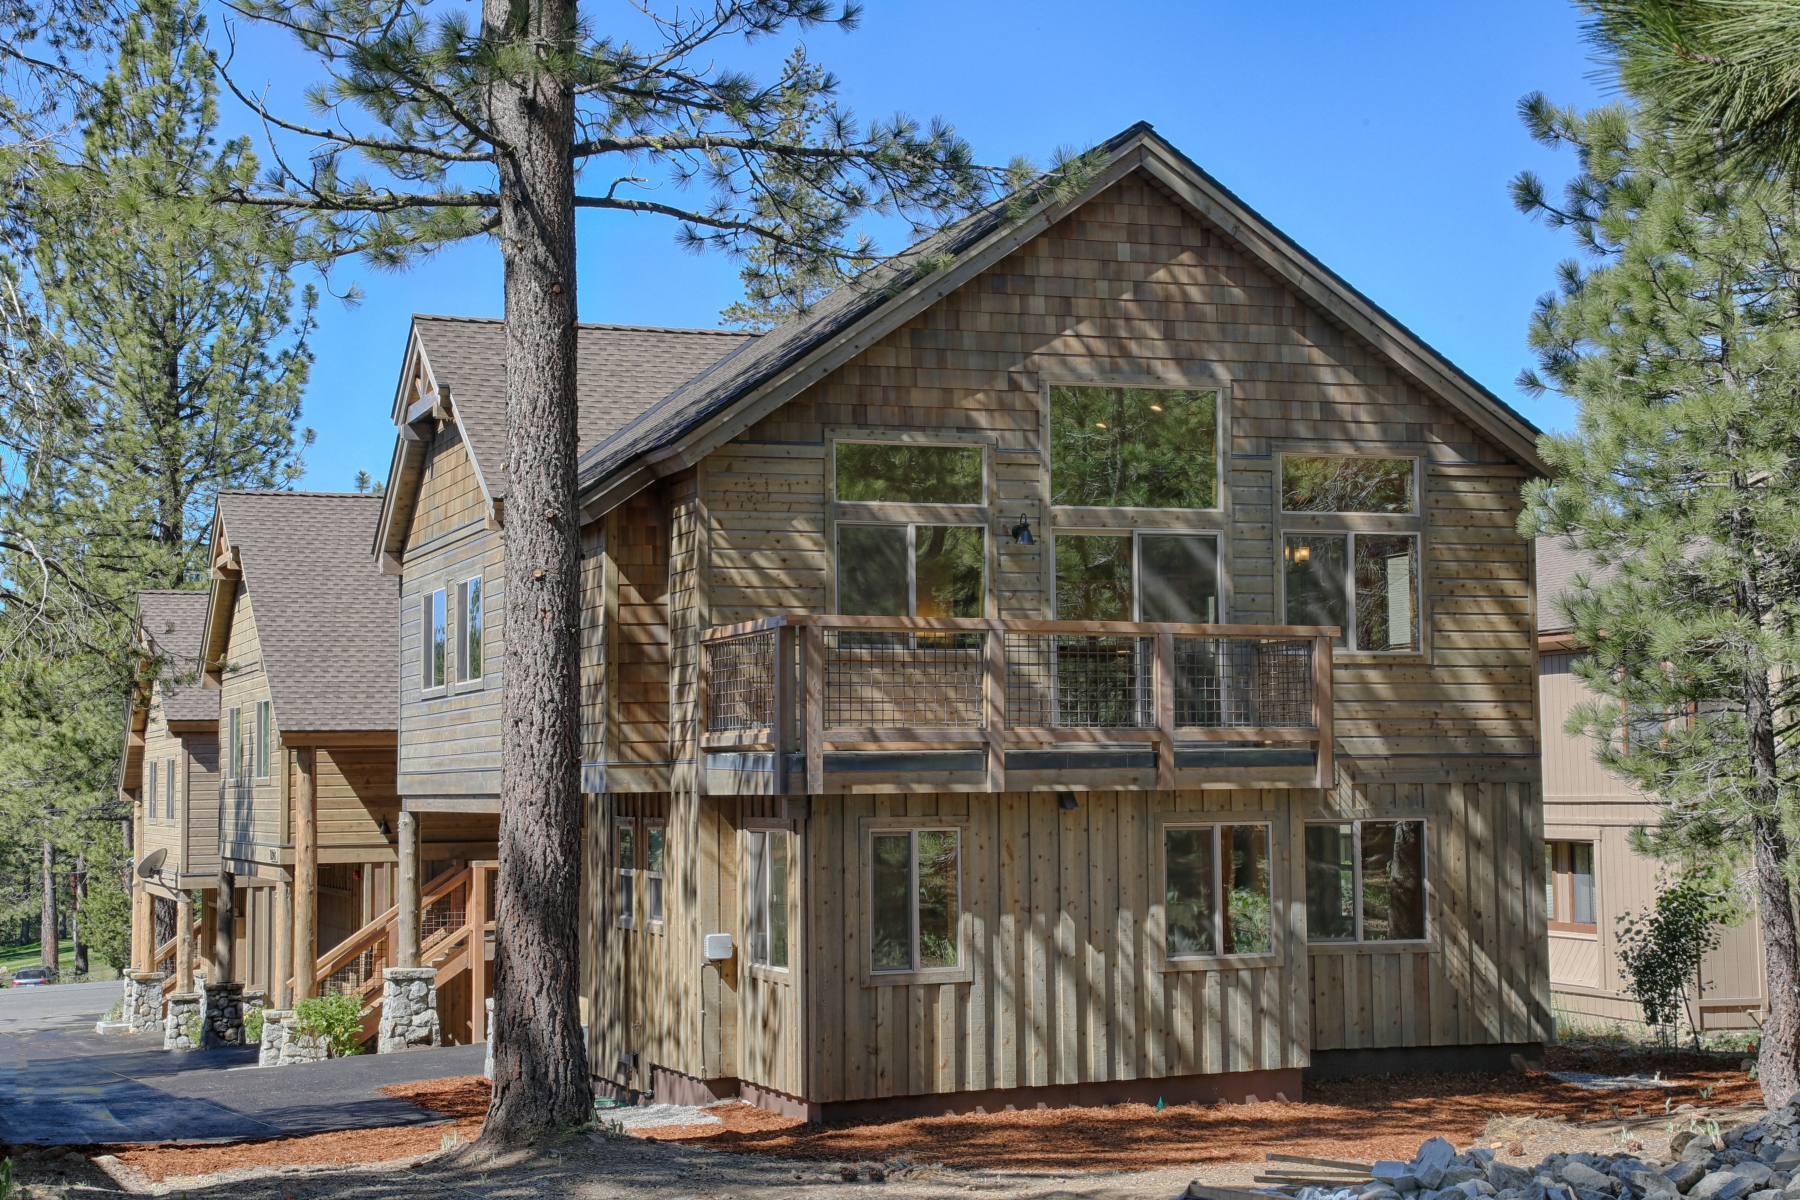 Single Family Home for Active at 12905 Northwoods Boulevard, Truckee, California 96161 Truckee, California 96161 United States